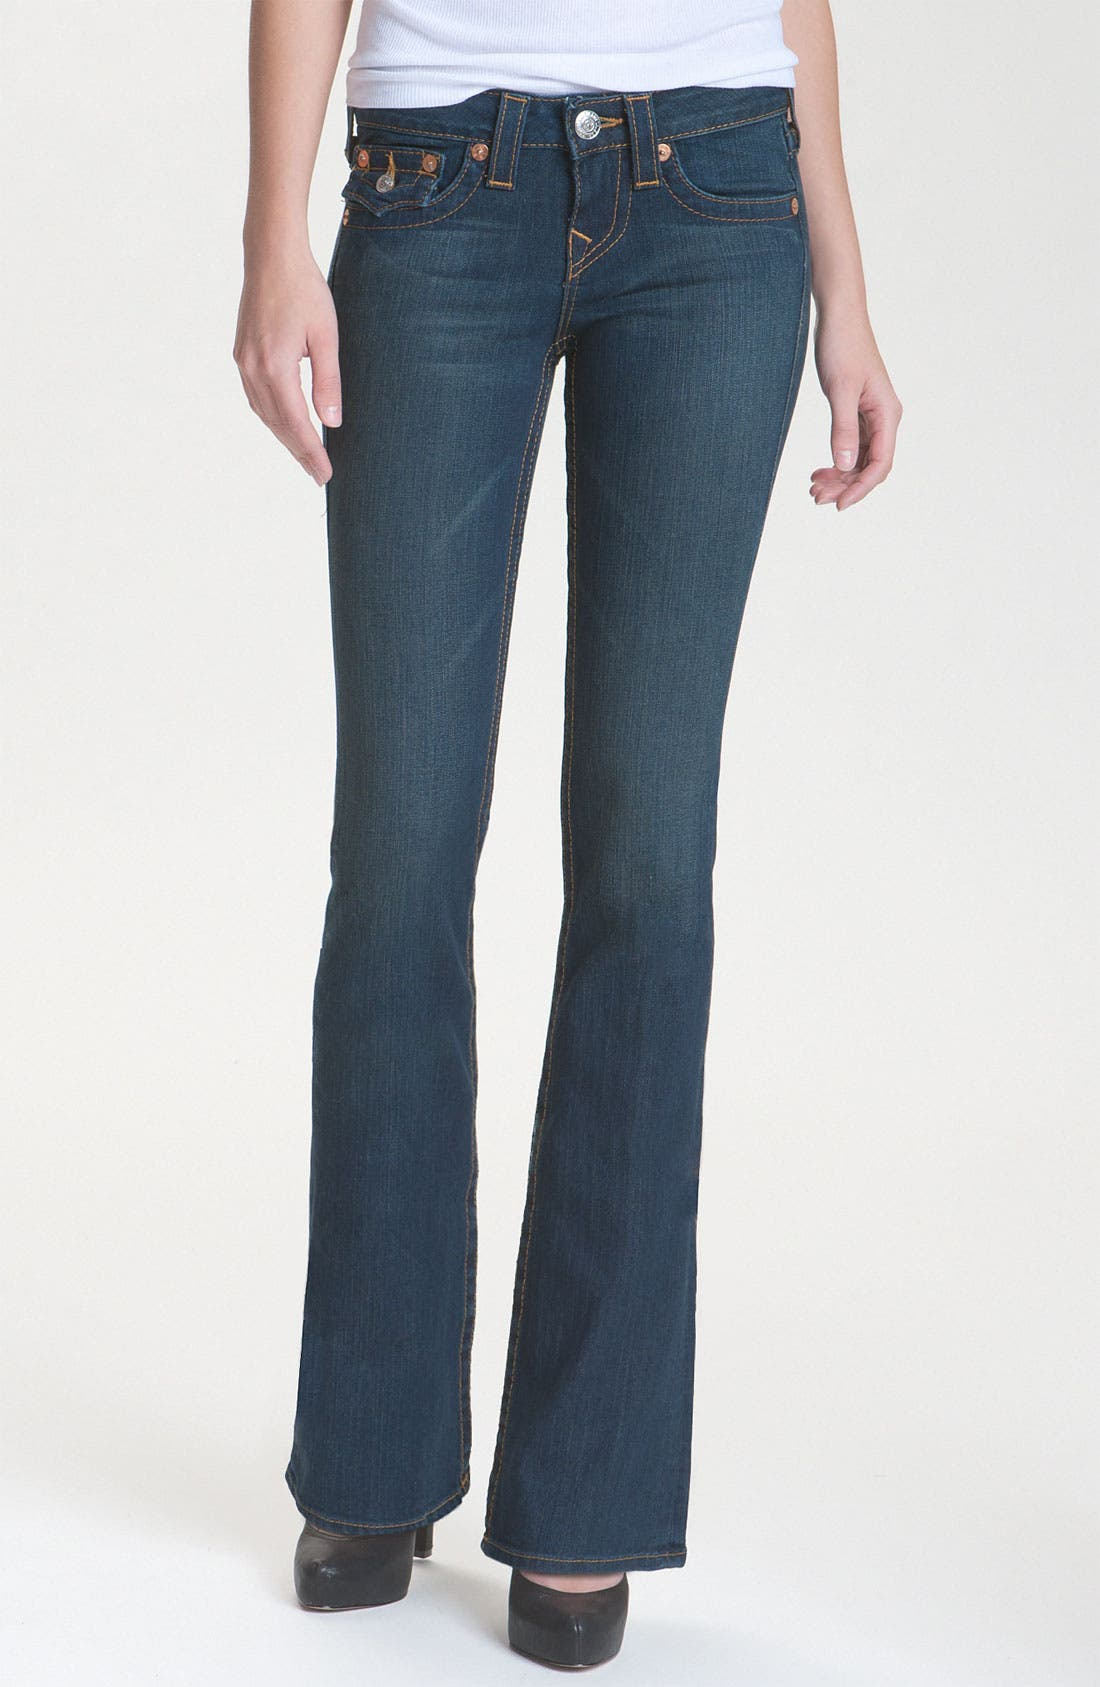 Alternate Image 1 Selected - True Religion Brand Jeans 'Becky' Bootcut Jeans (Vera Cruz) (Petite)